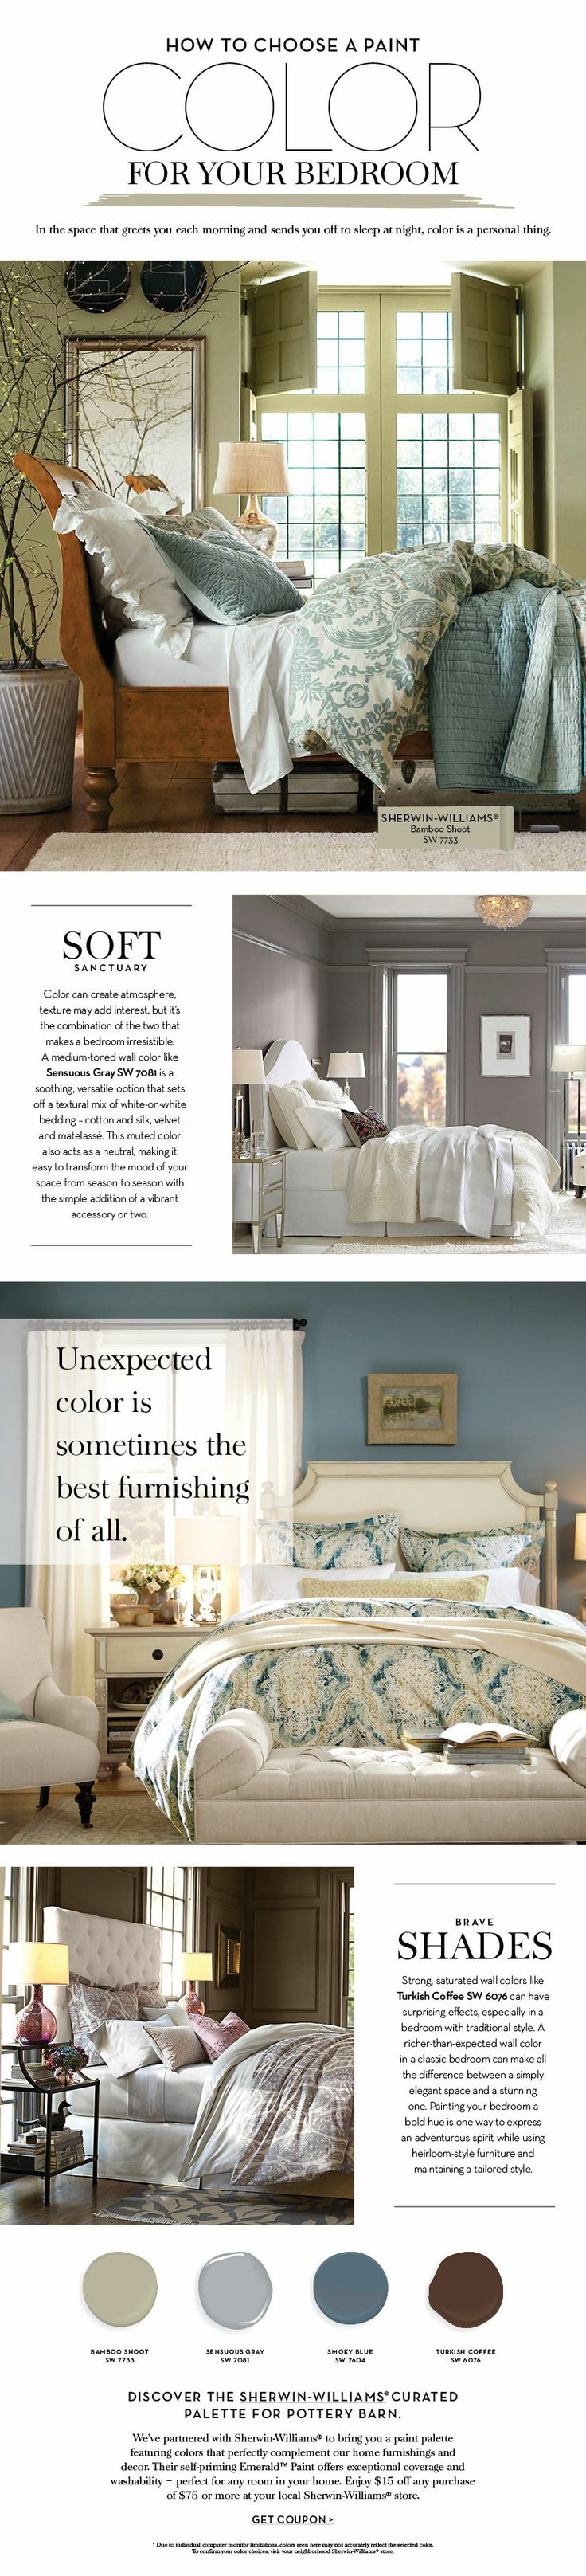 Paint colors for in bedroom traditional with exposed beams butter - Choose A Paint Color For Your Bedroom Pottery Barn